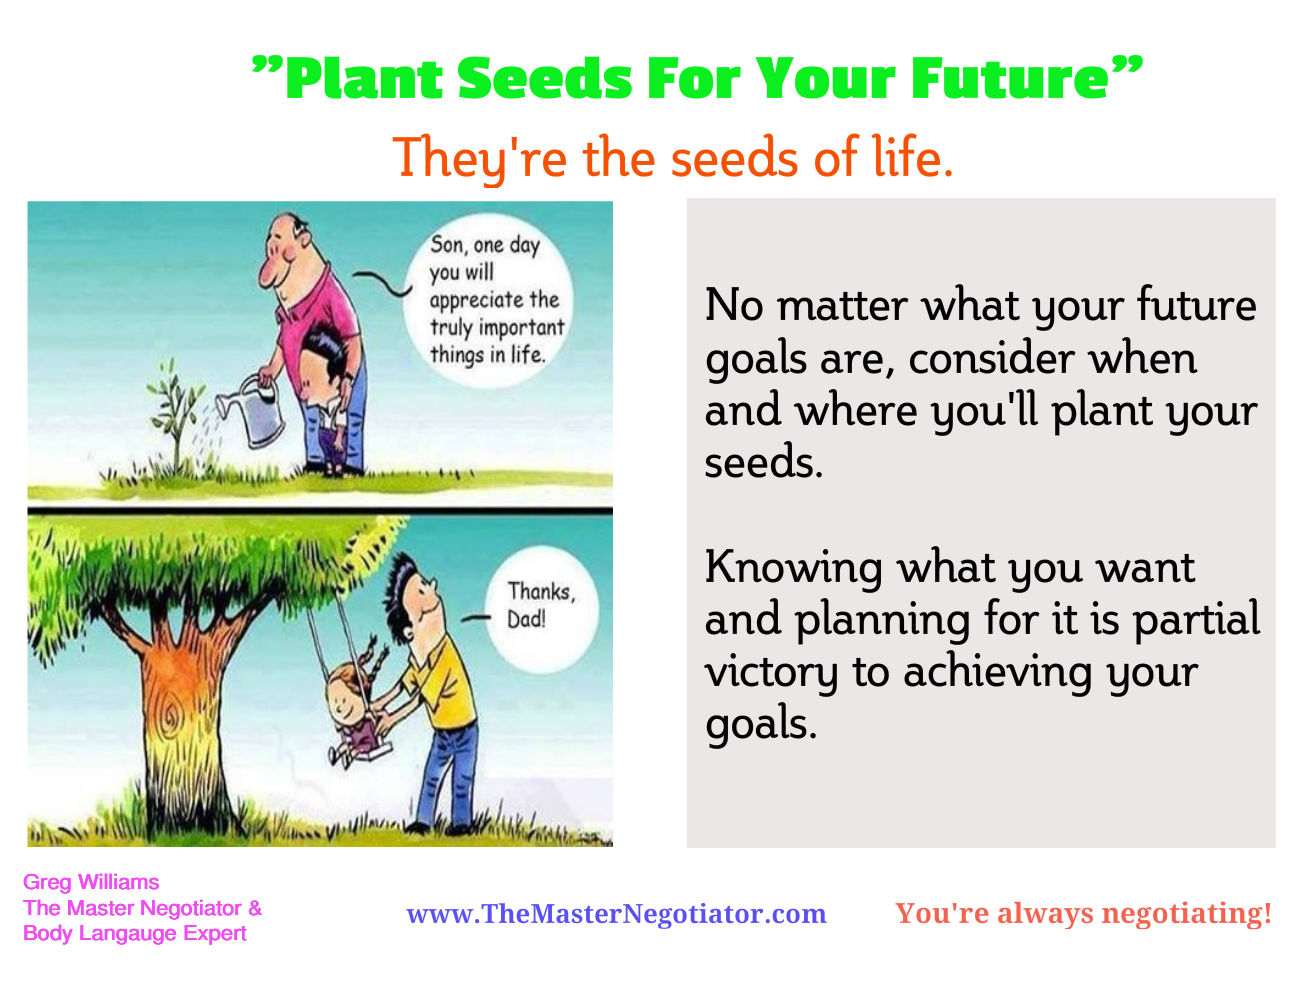 Plant Seeds For Your Future Negotiation